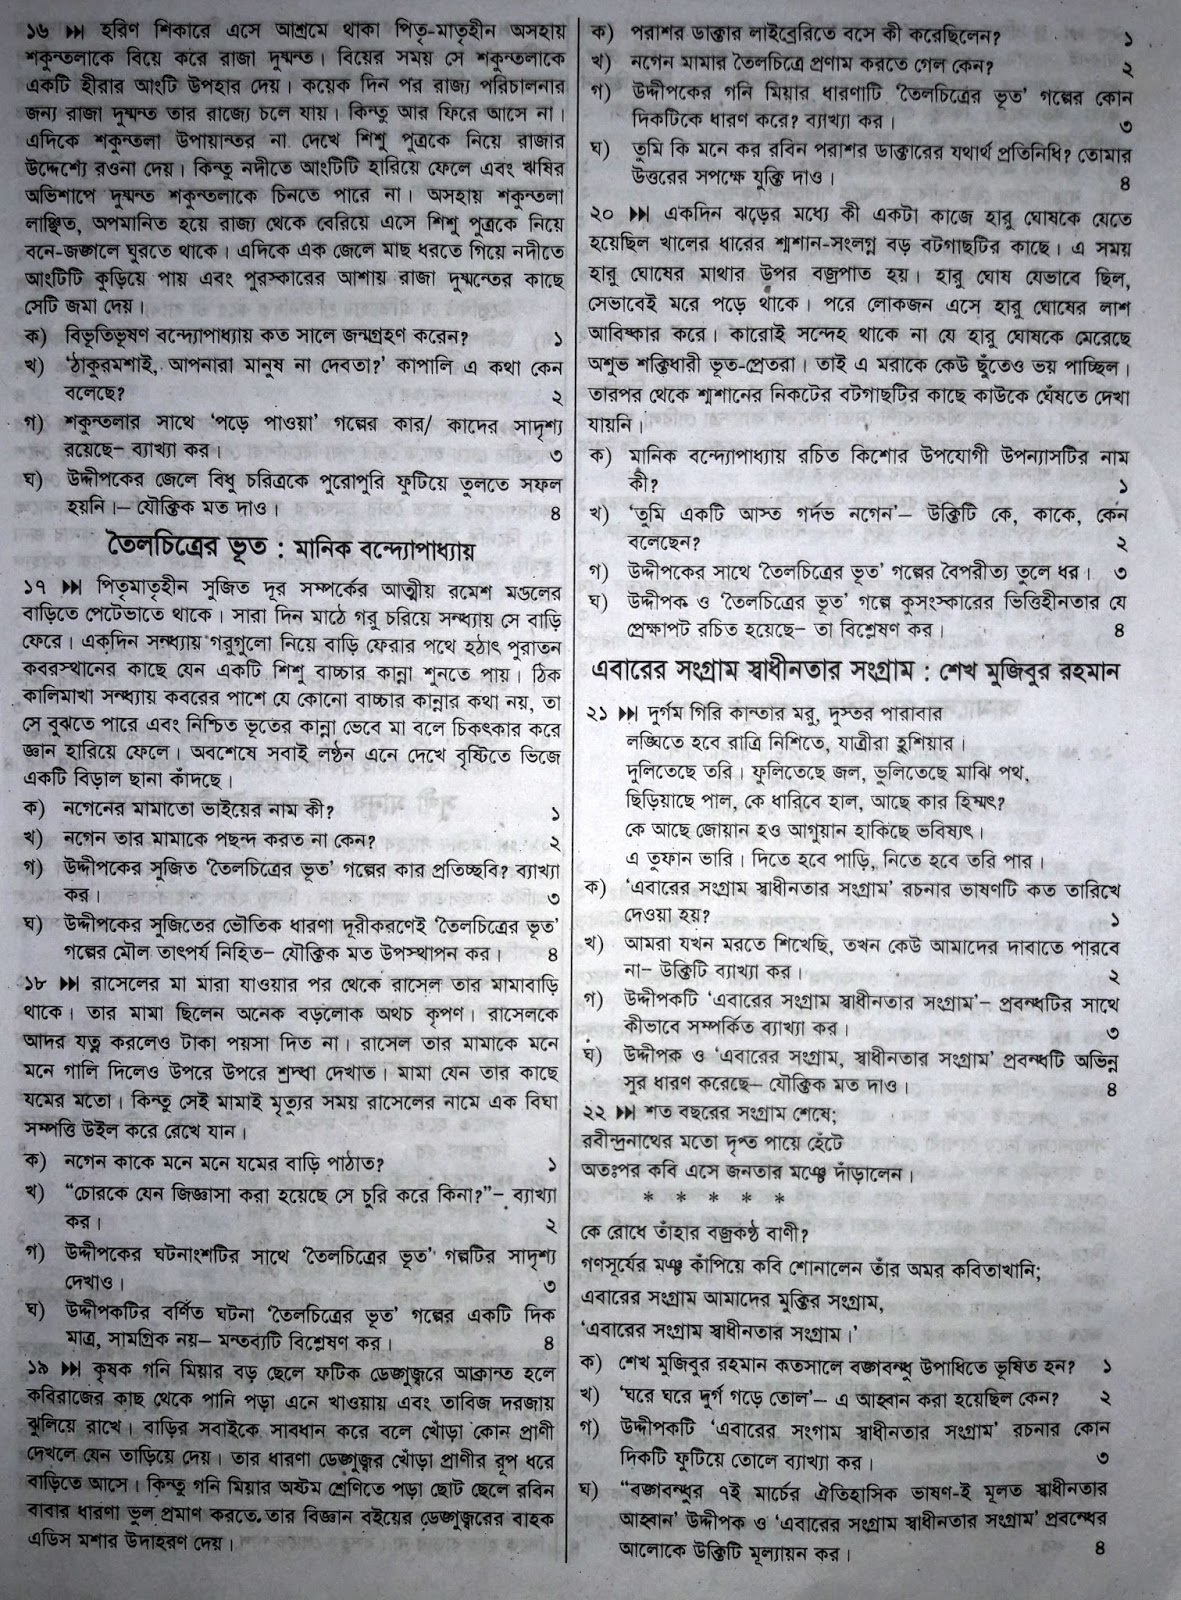 jsc bangla suggestion 2019, 1st paper, exam question paper, model question, mcq question, question pattern, preparation for dhaka board, all boards